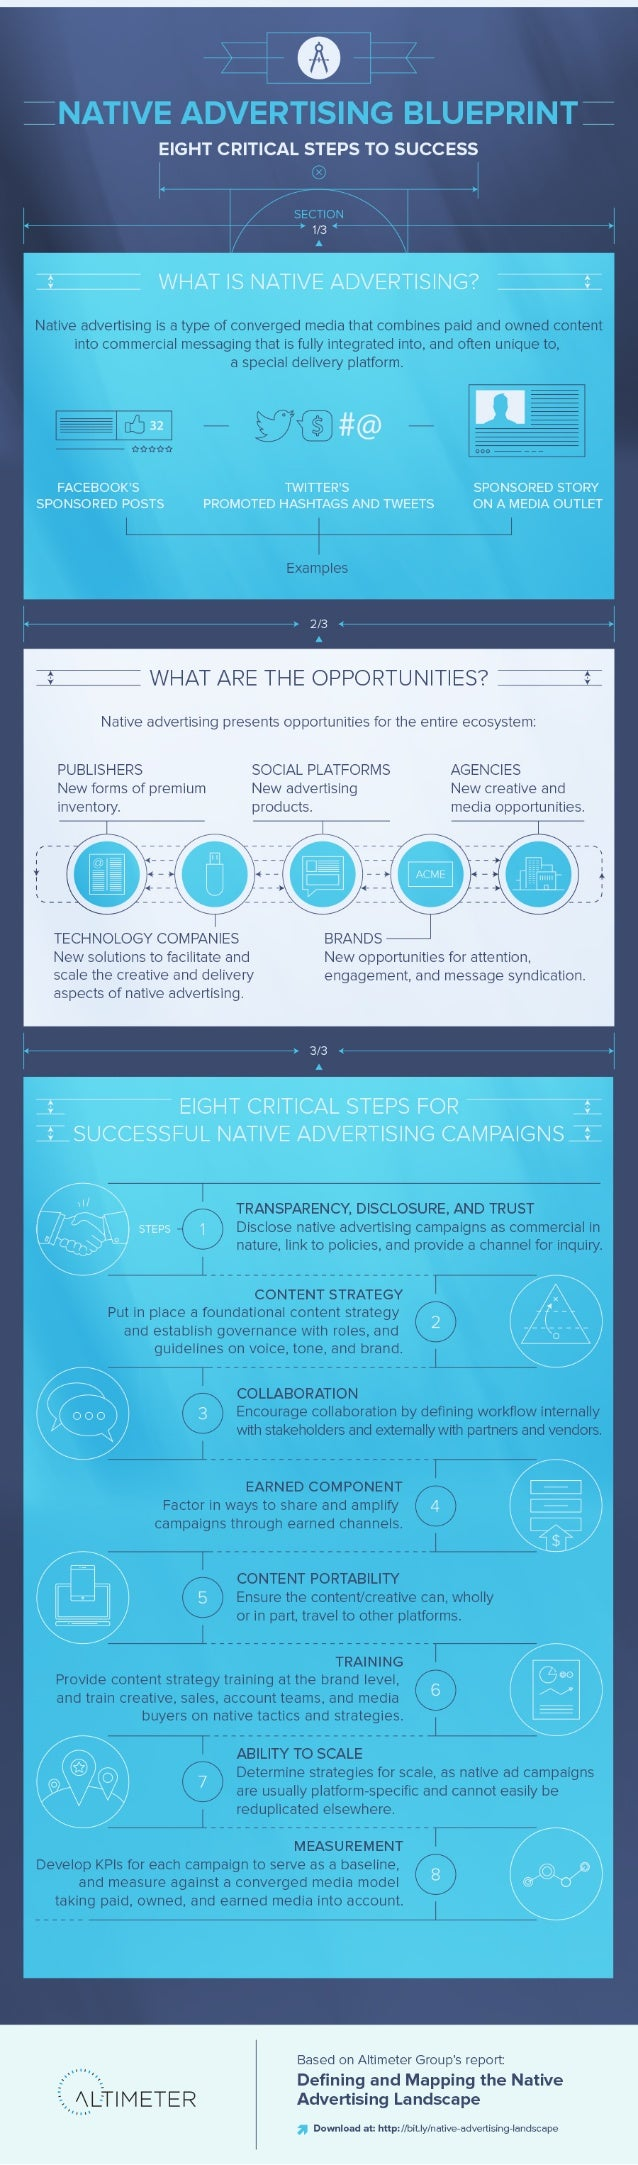 [Graphic] Native Advertising Blueprint: Eight Critical Steps to Success